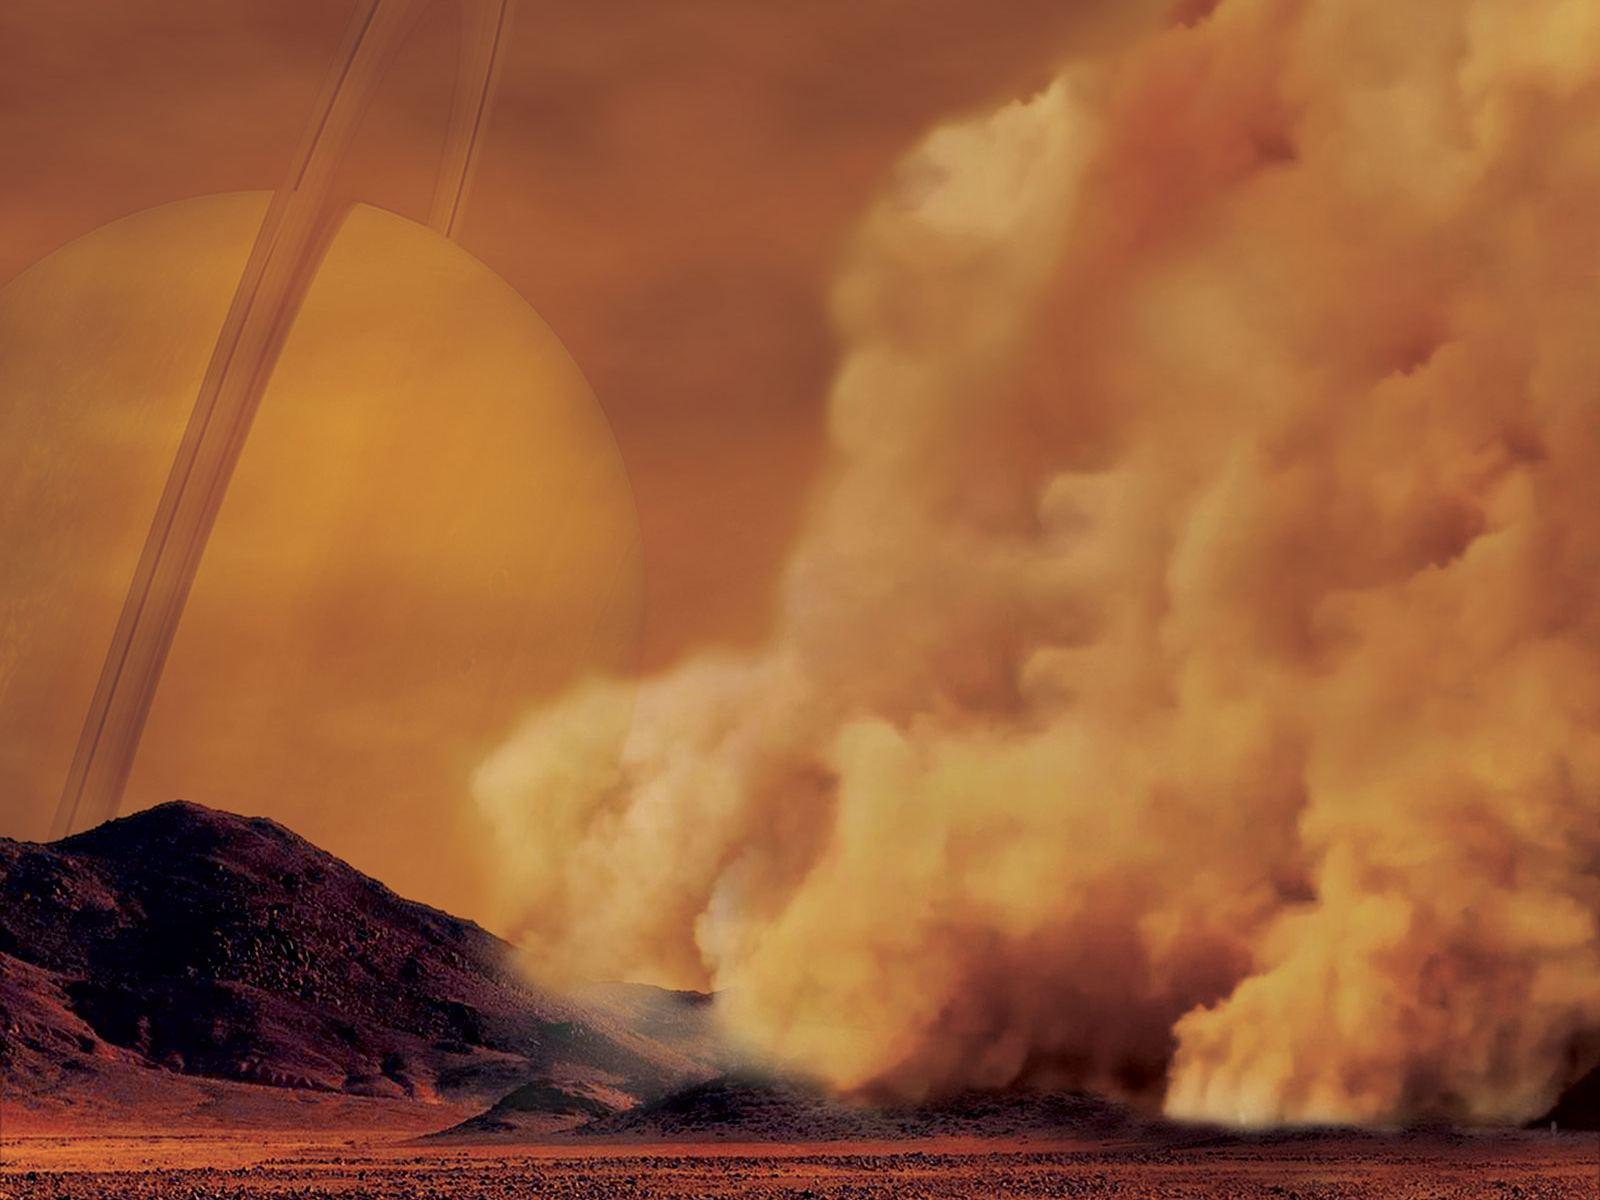 Titan Archives Universe Today Infrared Video Of A Hovering Nasa Lander Ever Since The Cassini Orbiter Entered Saturn System In July 2004 Scientists And General Public Have Been Treated To Steady Stream Data